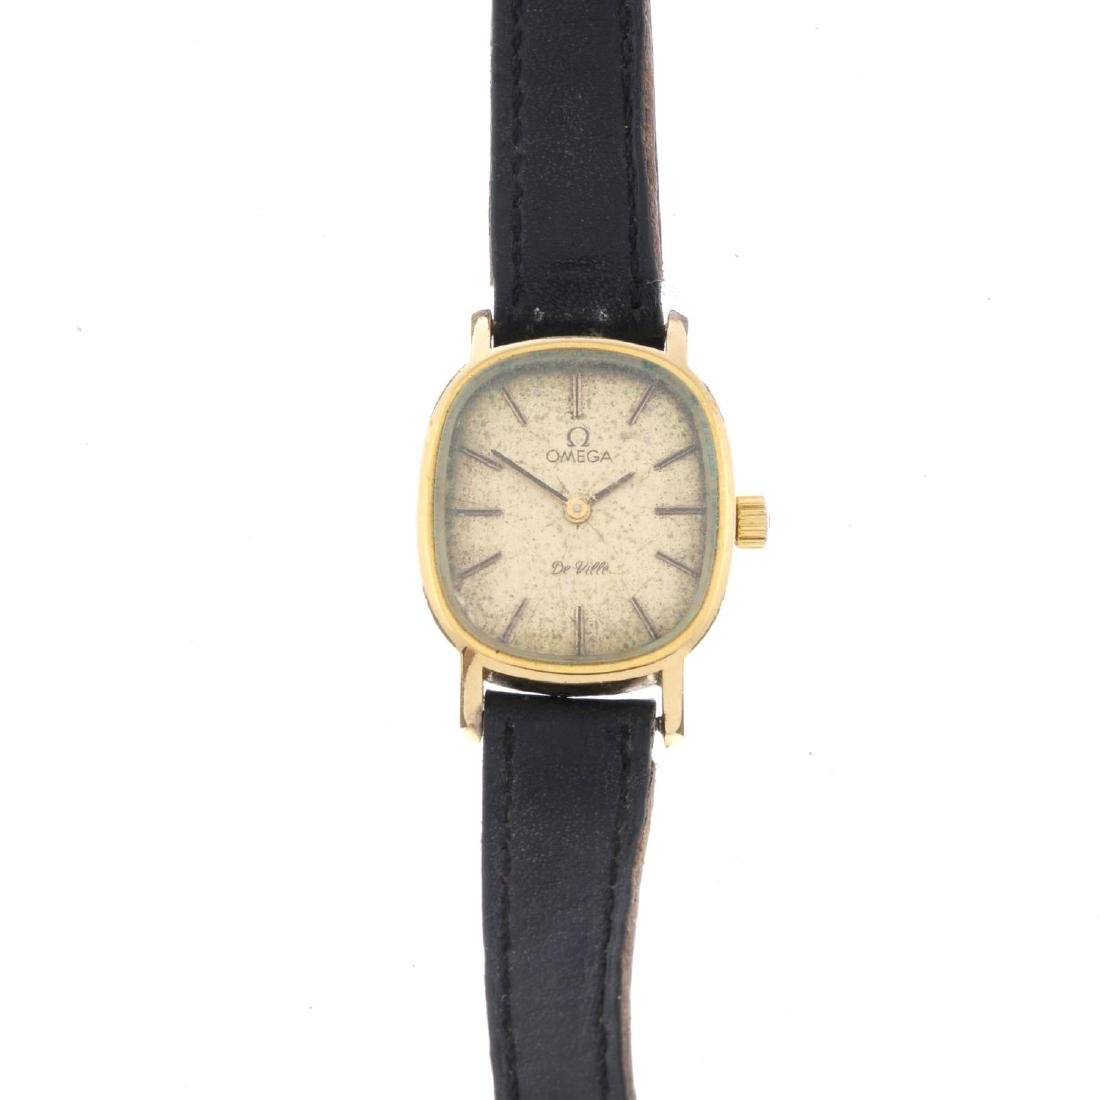 OMEGA - a lady's De Ville wrist watch. Gold plated